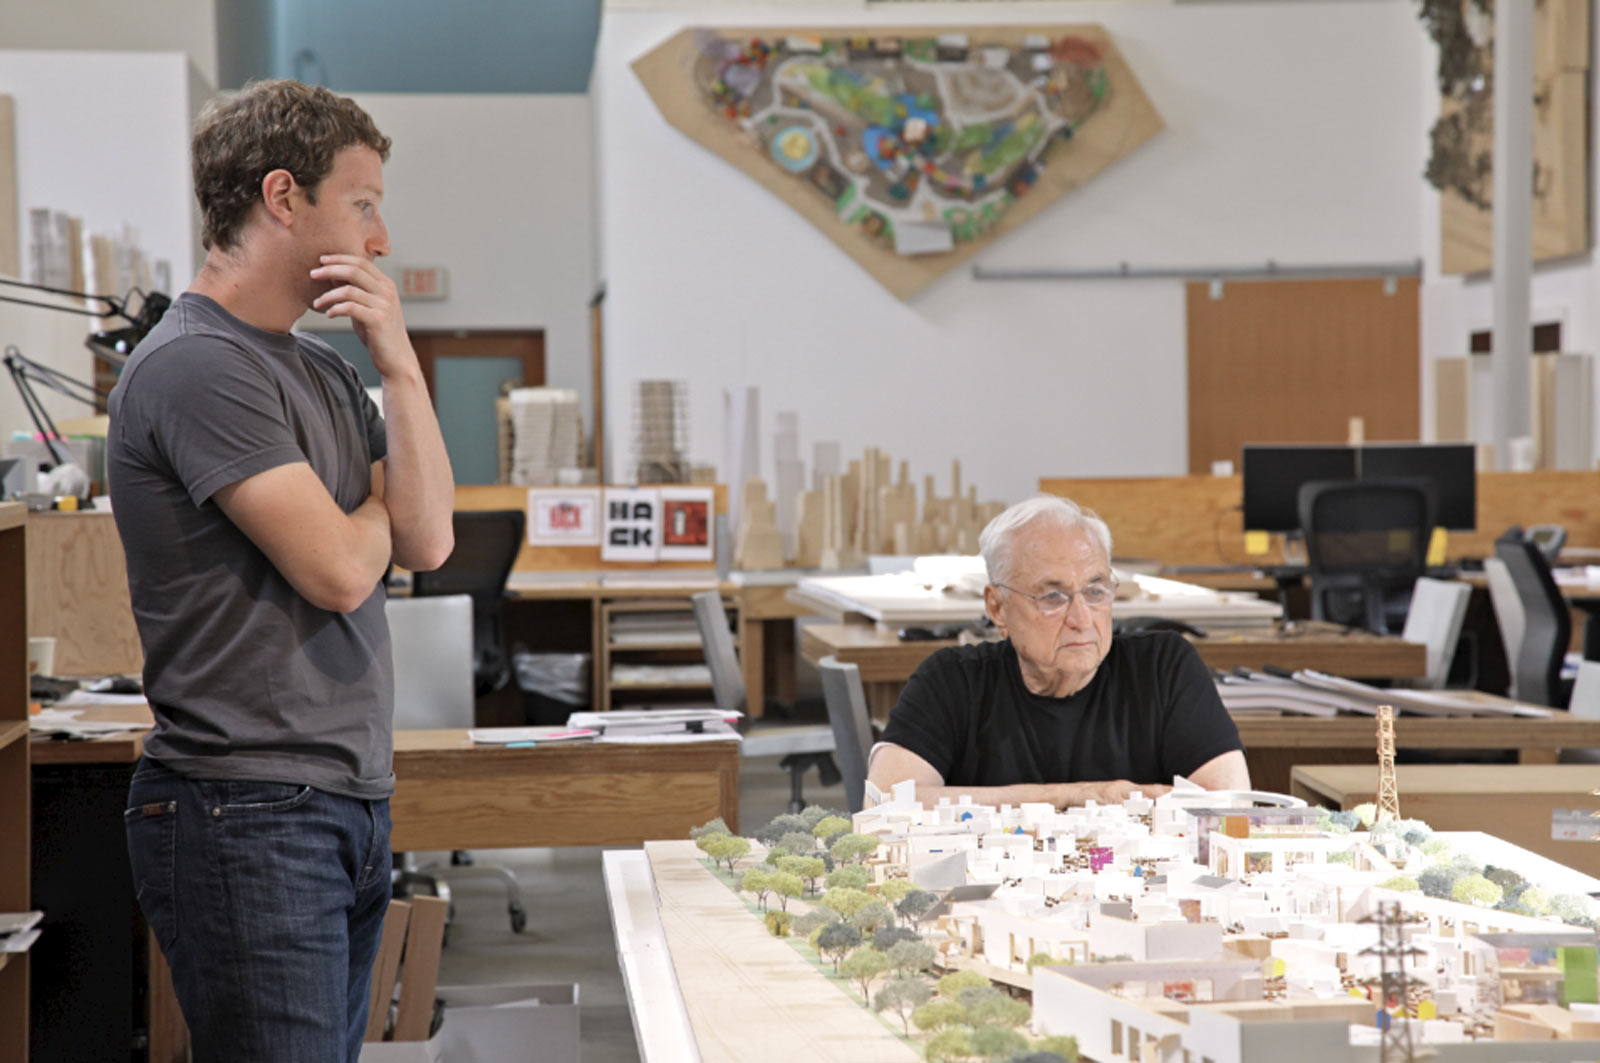 Facebook 39 s new menlo park campus to be designed by frank gehry for Home architecture facebook